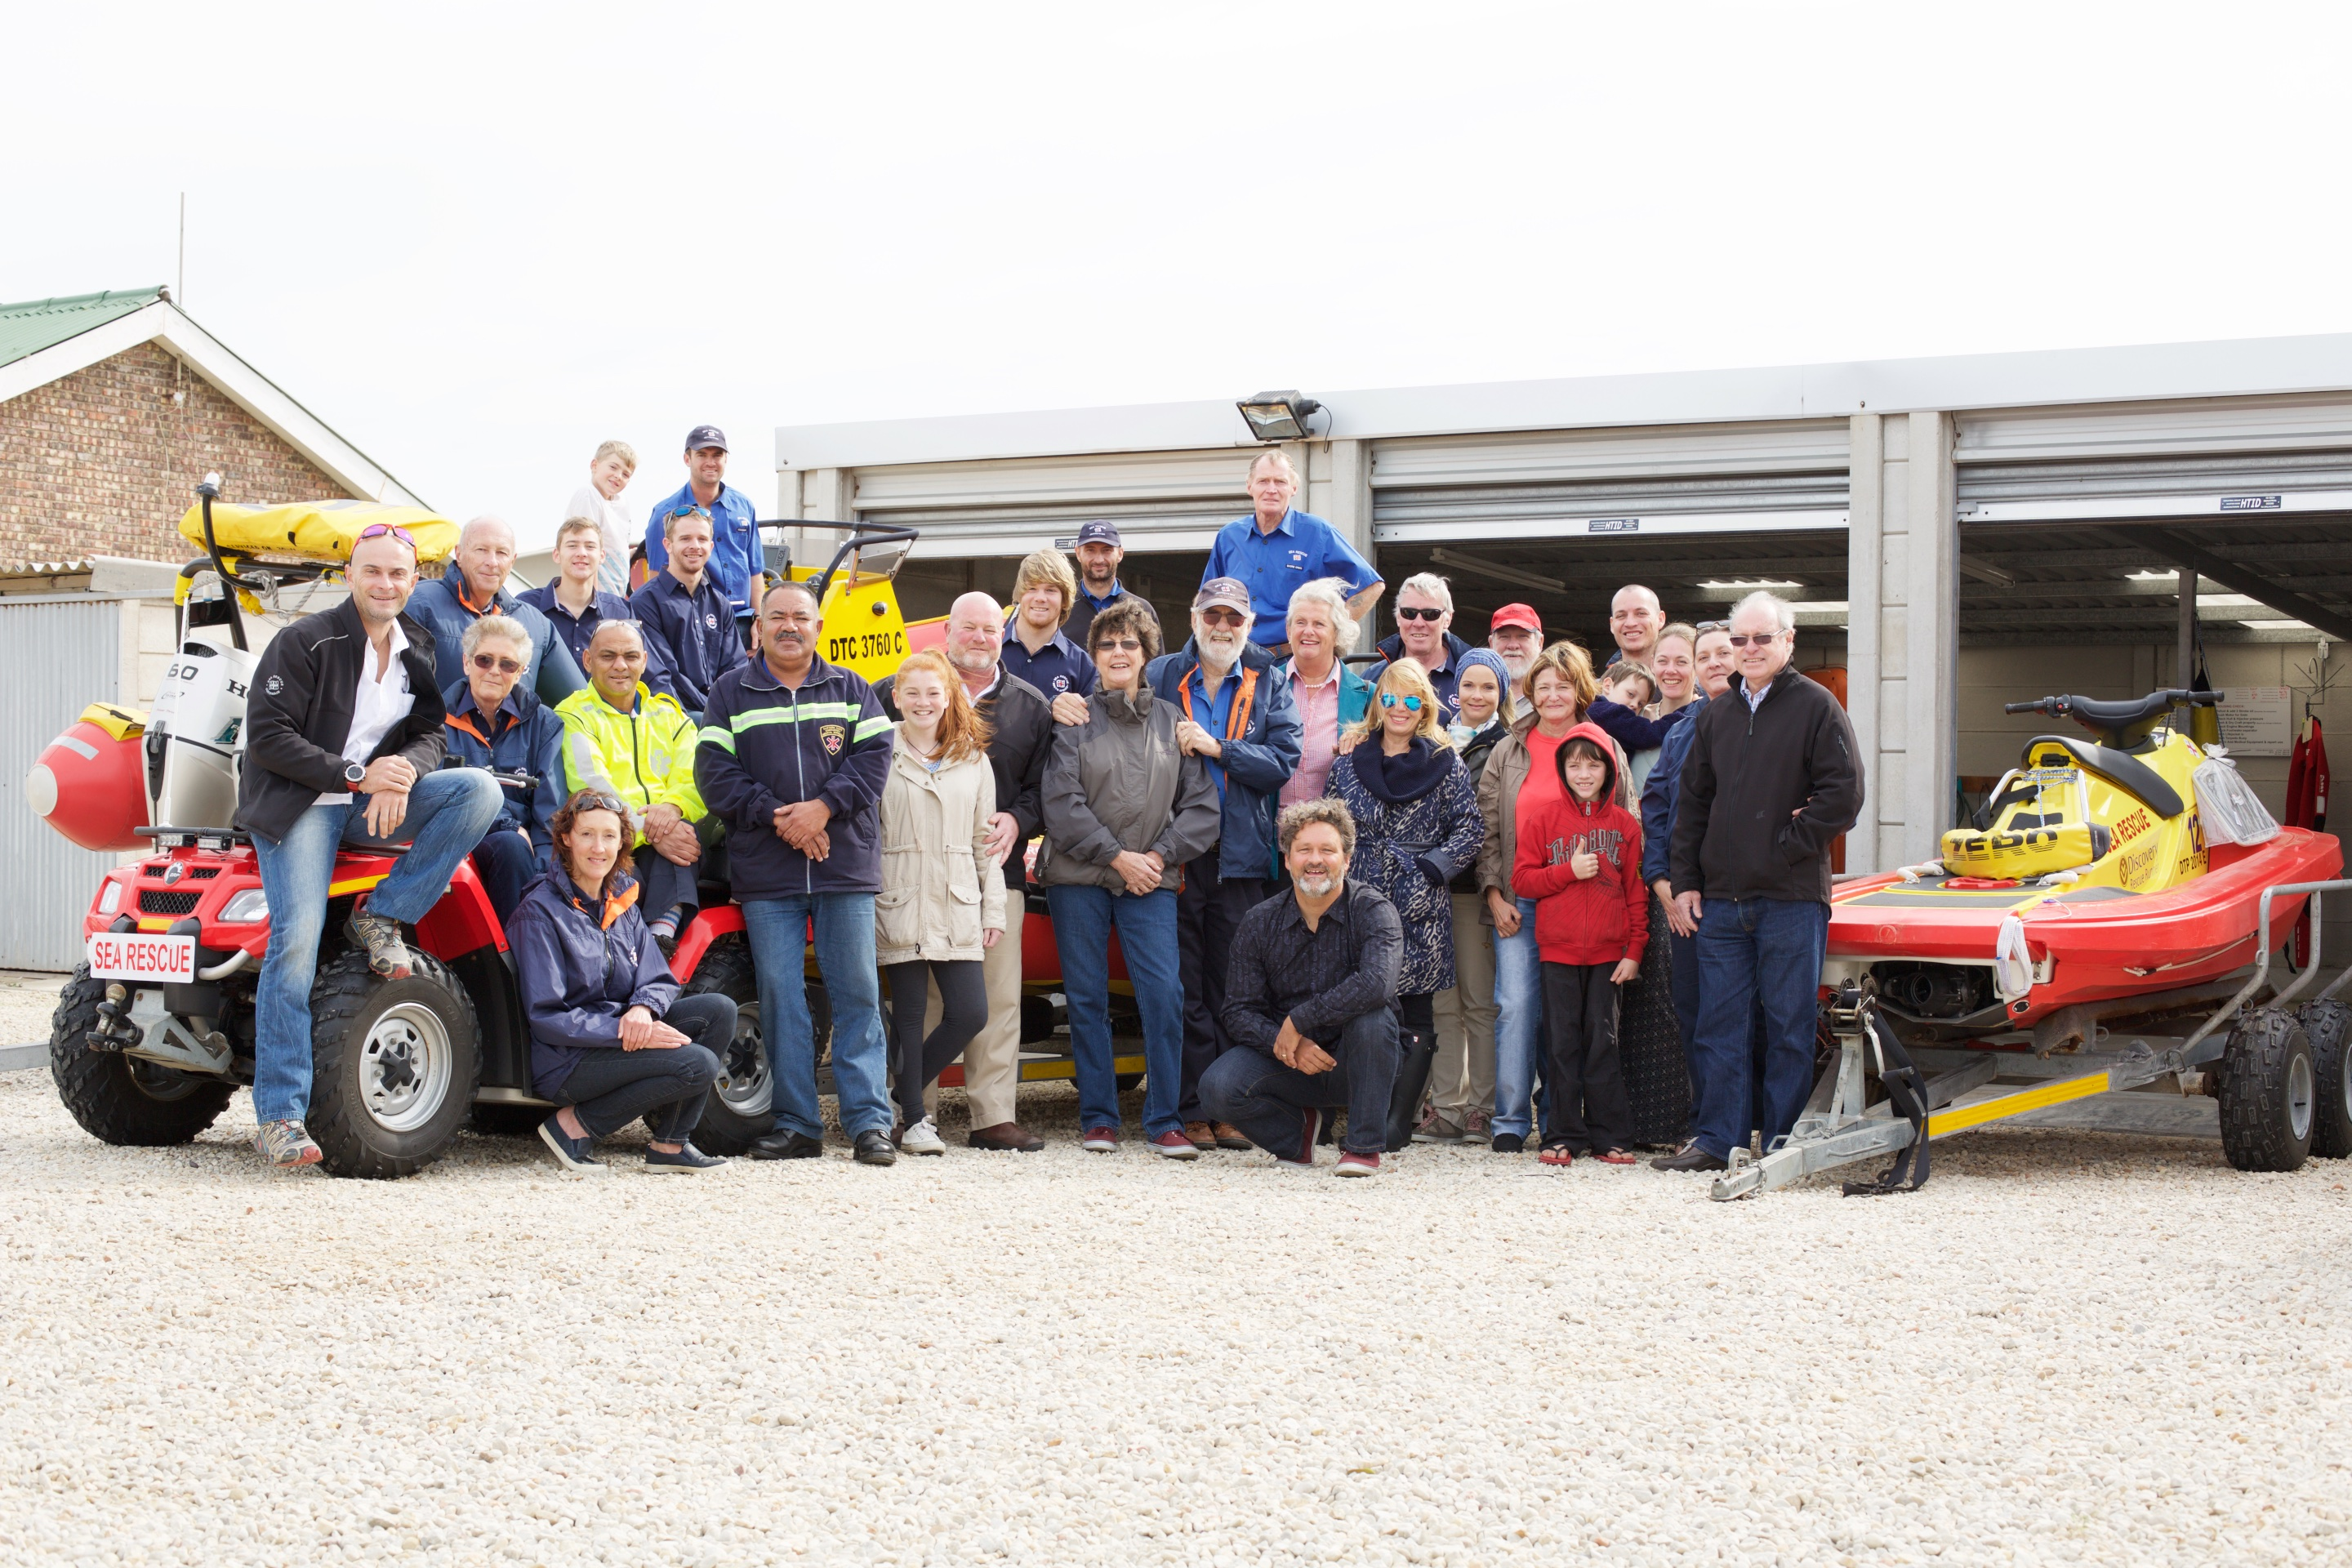 Project Group Rescuer, christening function at NSRI Station 37 | Jeffreys Bay, Captured by AD